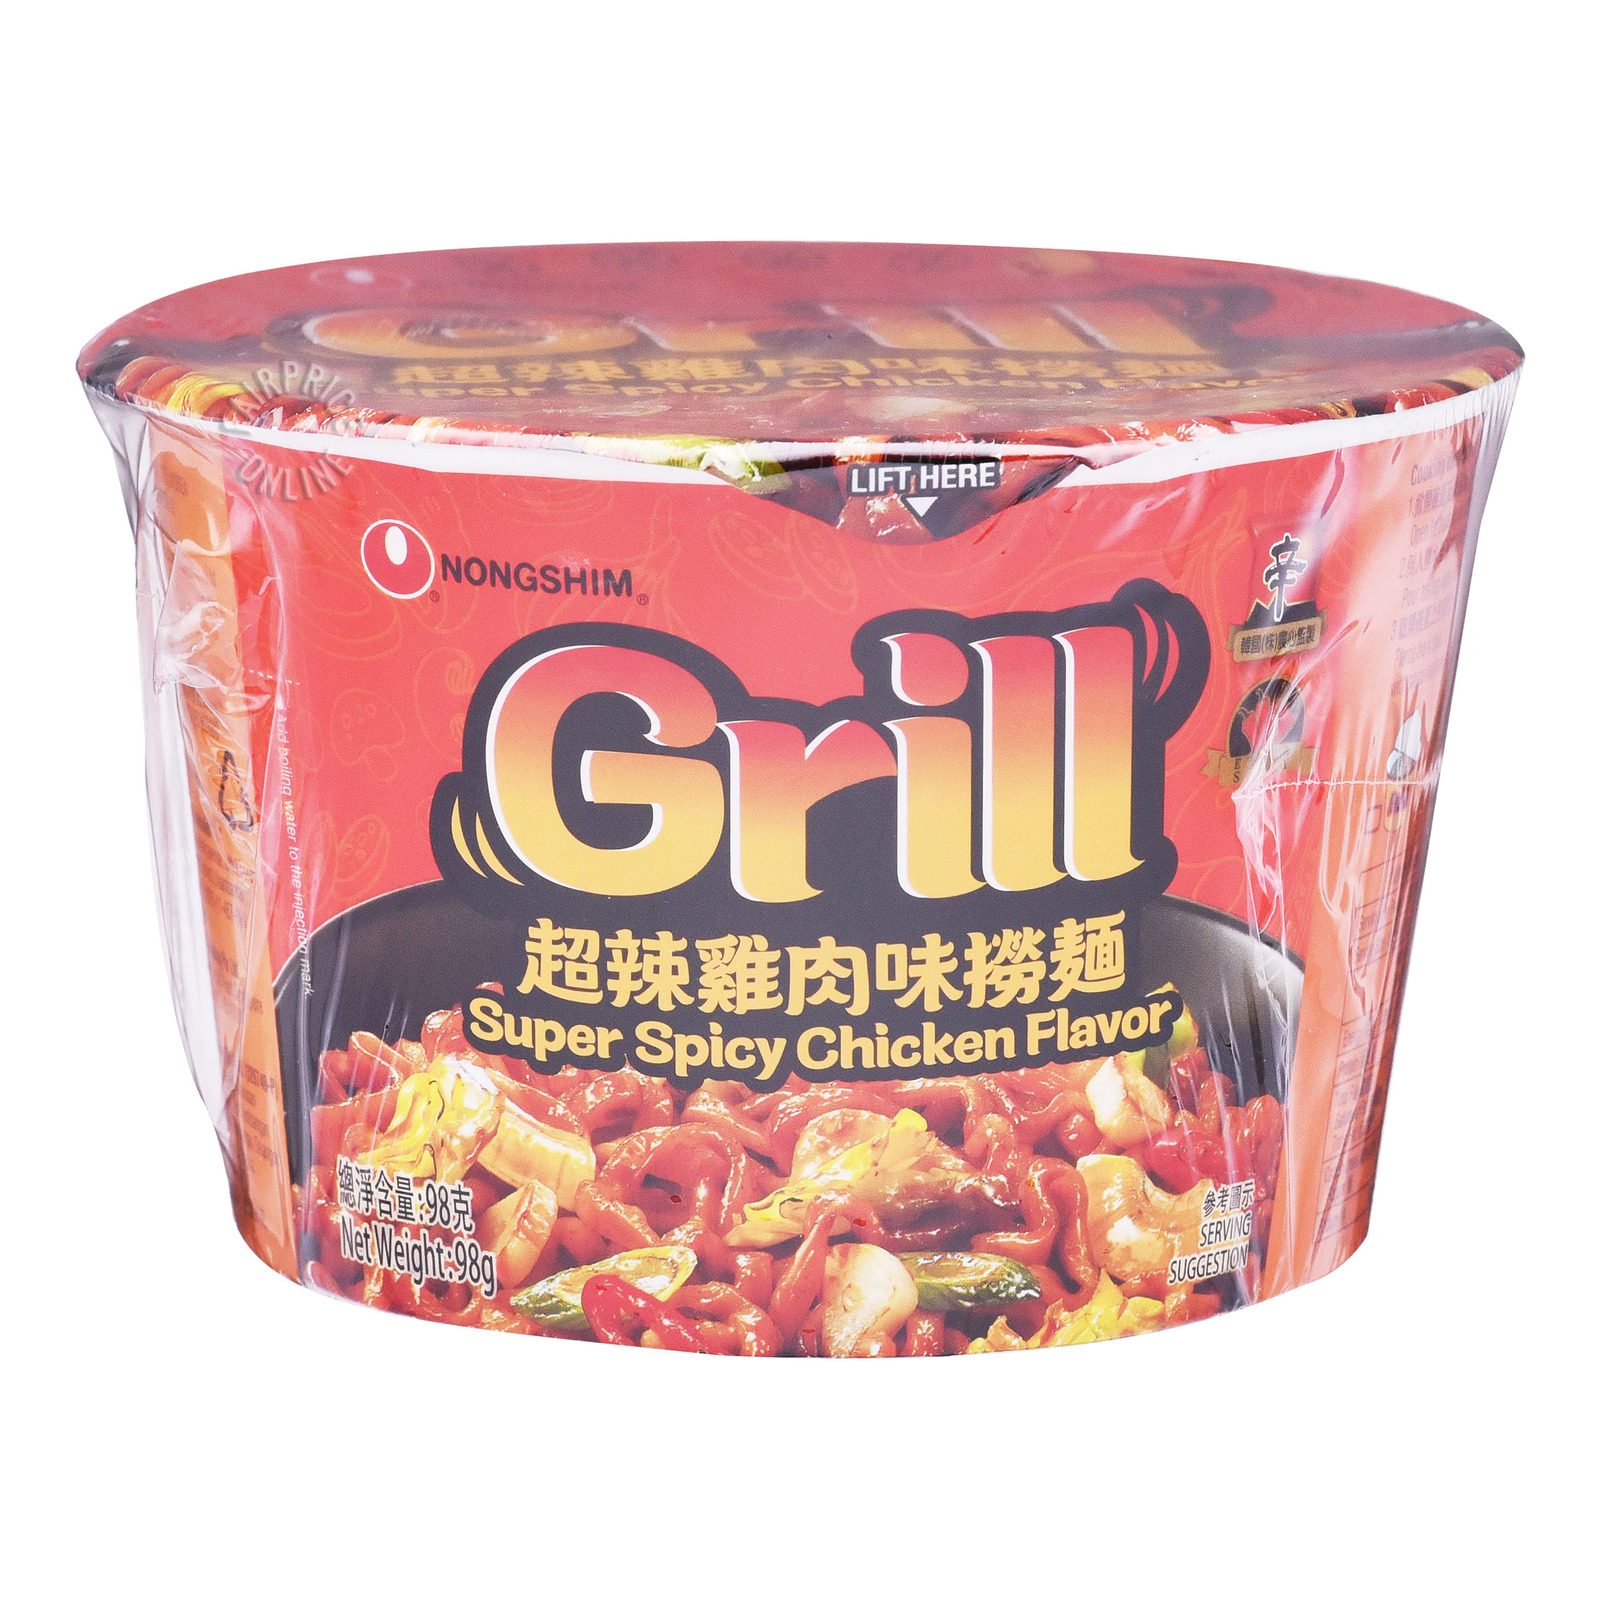 Nongshim Grill Instant Bowl Noodle - Super Spicy Chicken